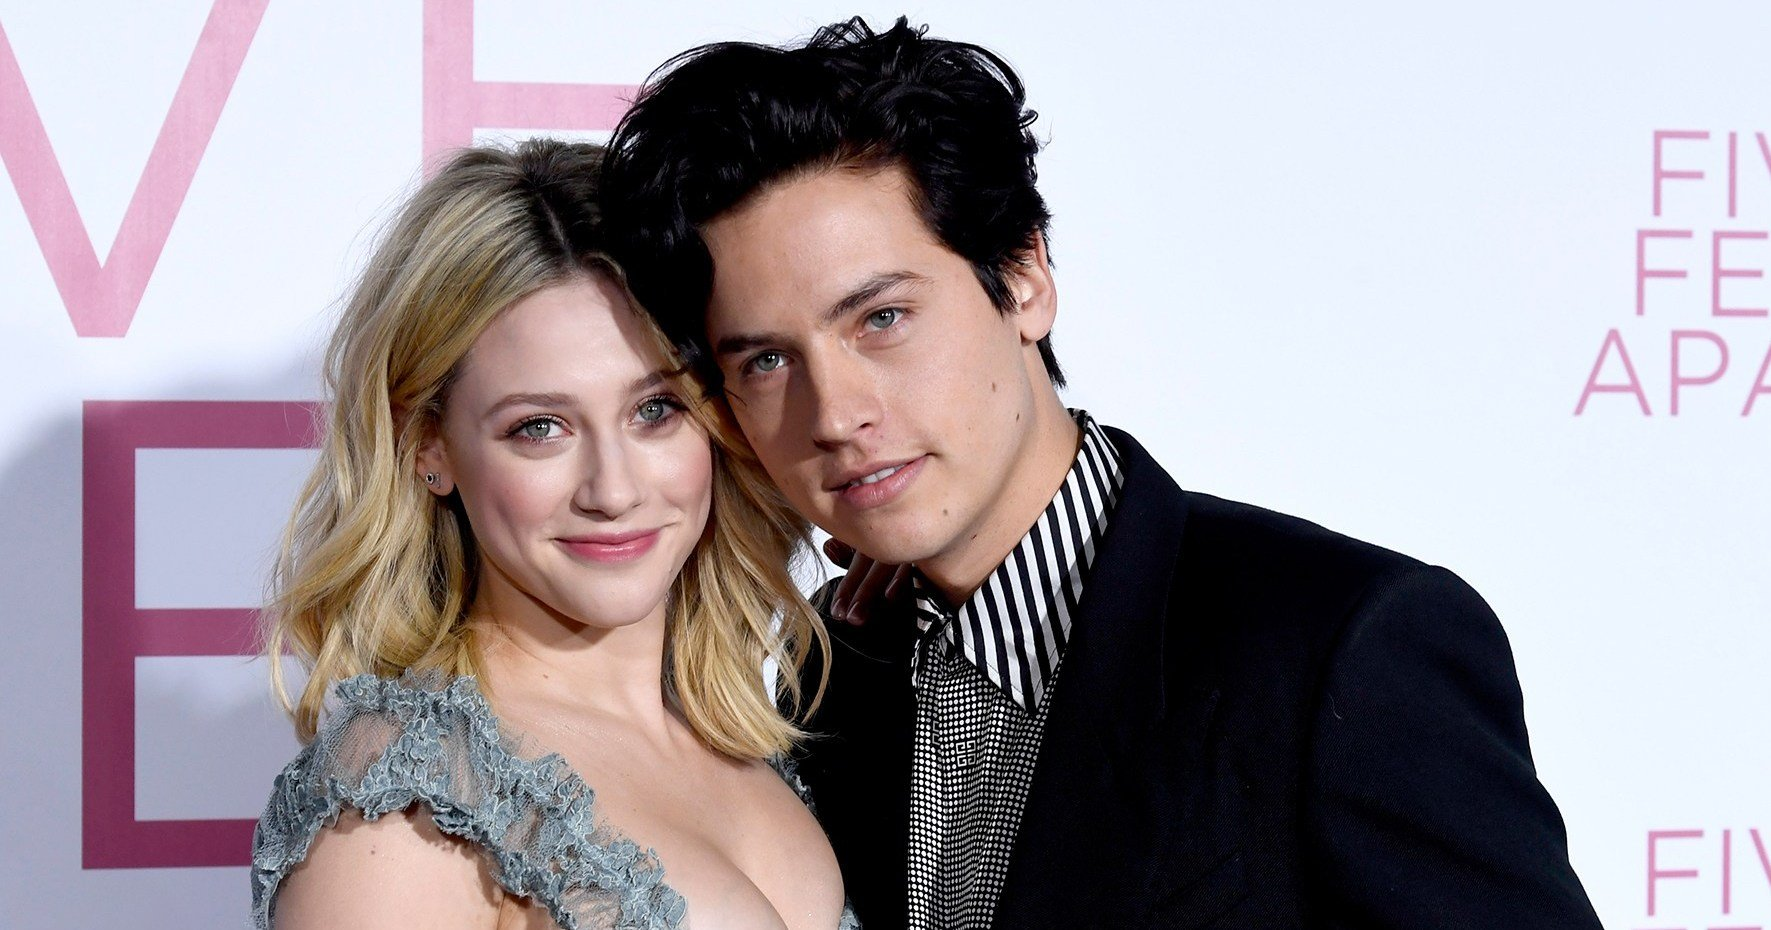 Bughead IRL! Lili Reinhart and Cole Sprouse's Relationship Timeline